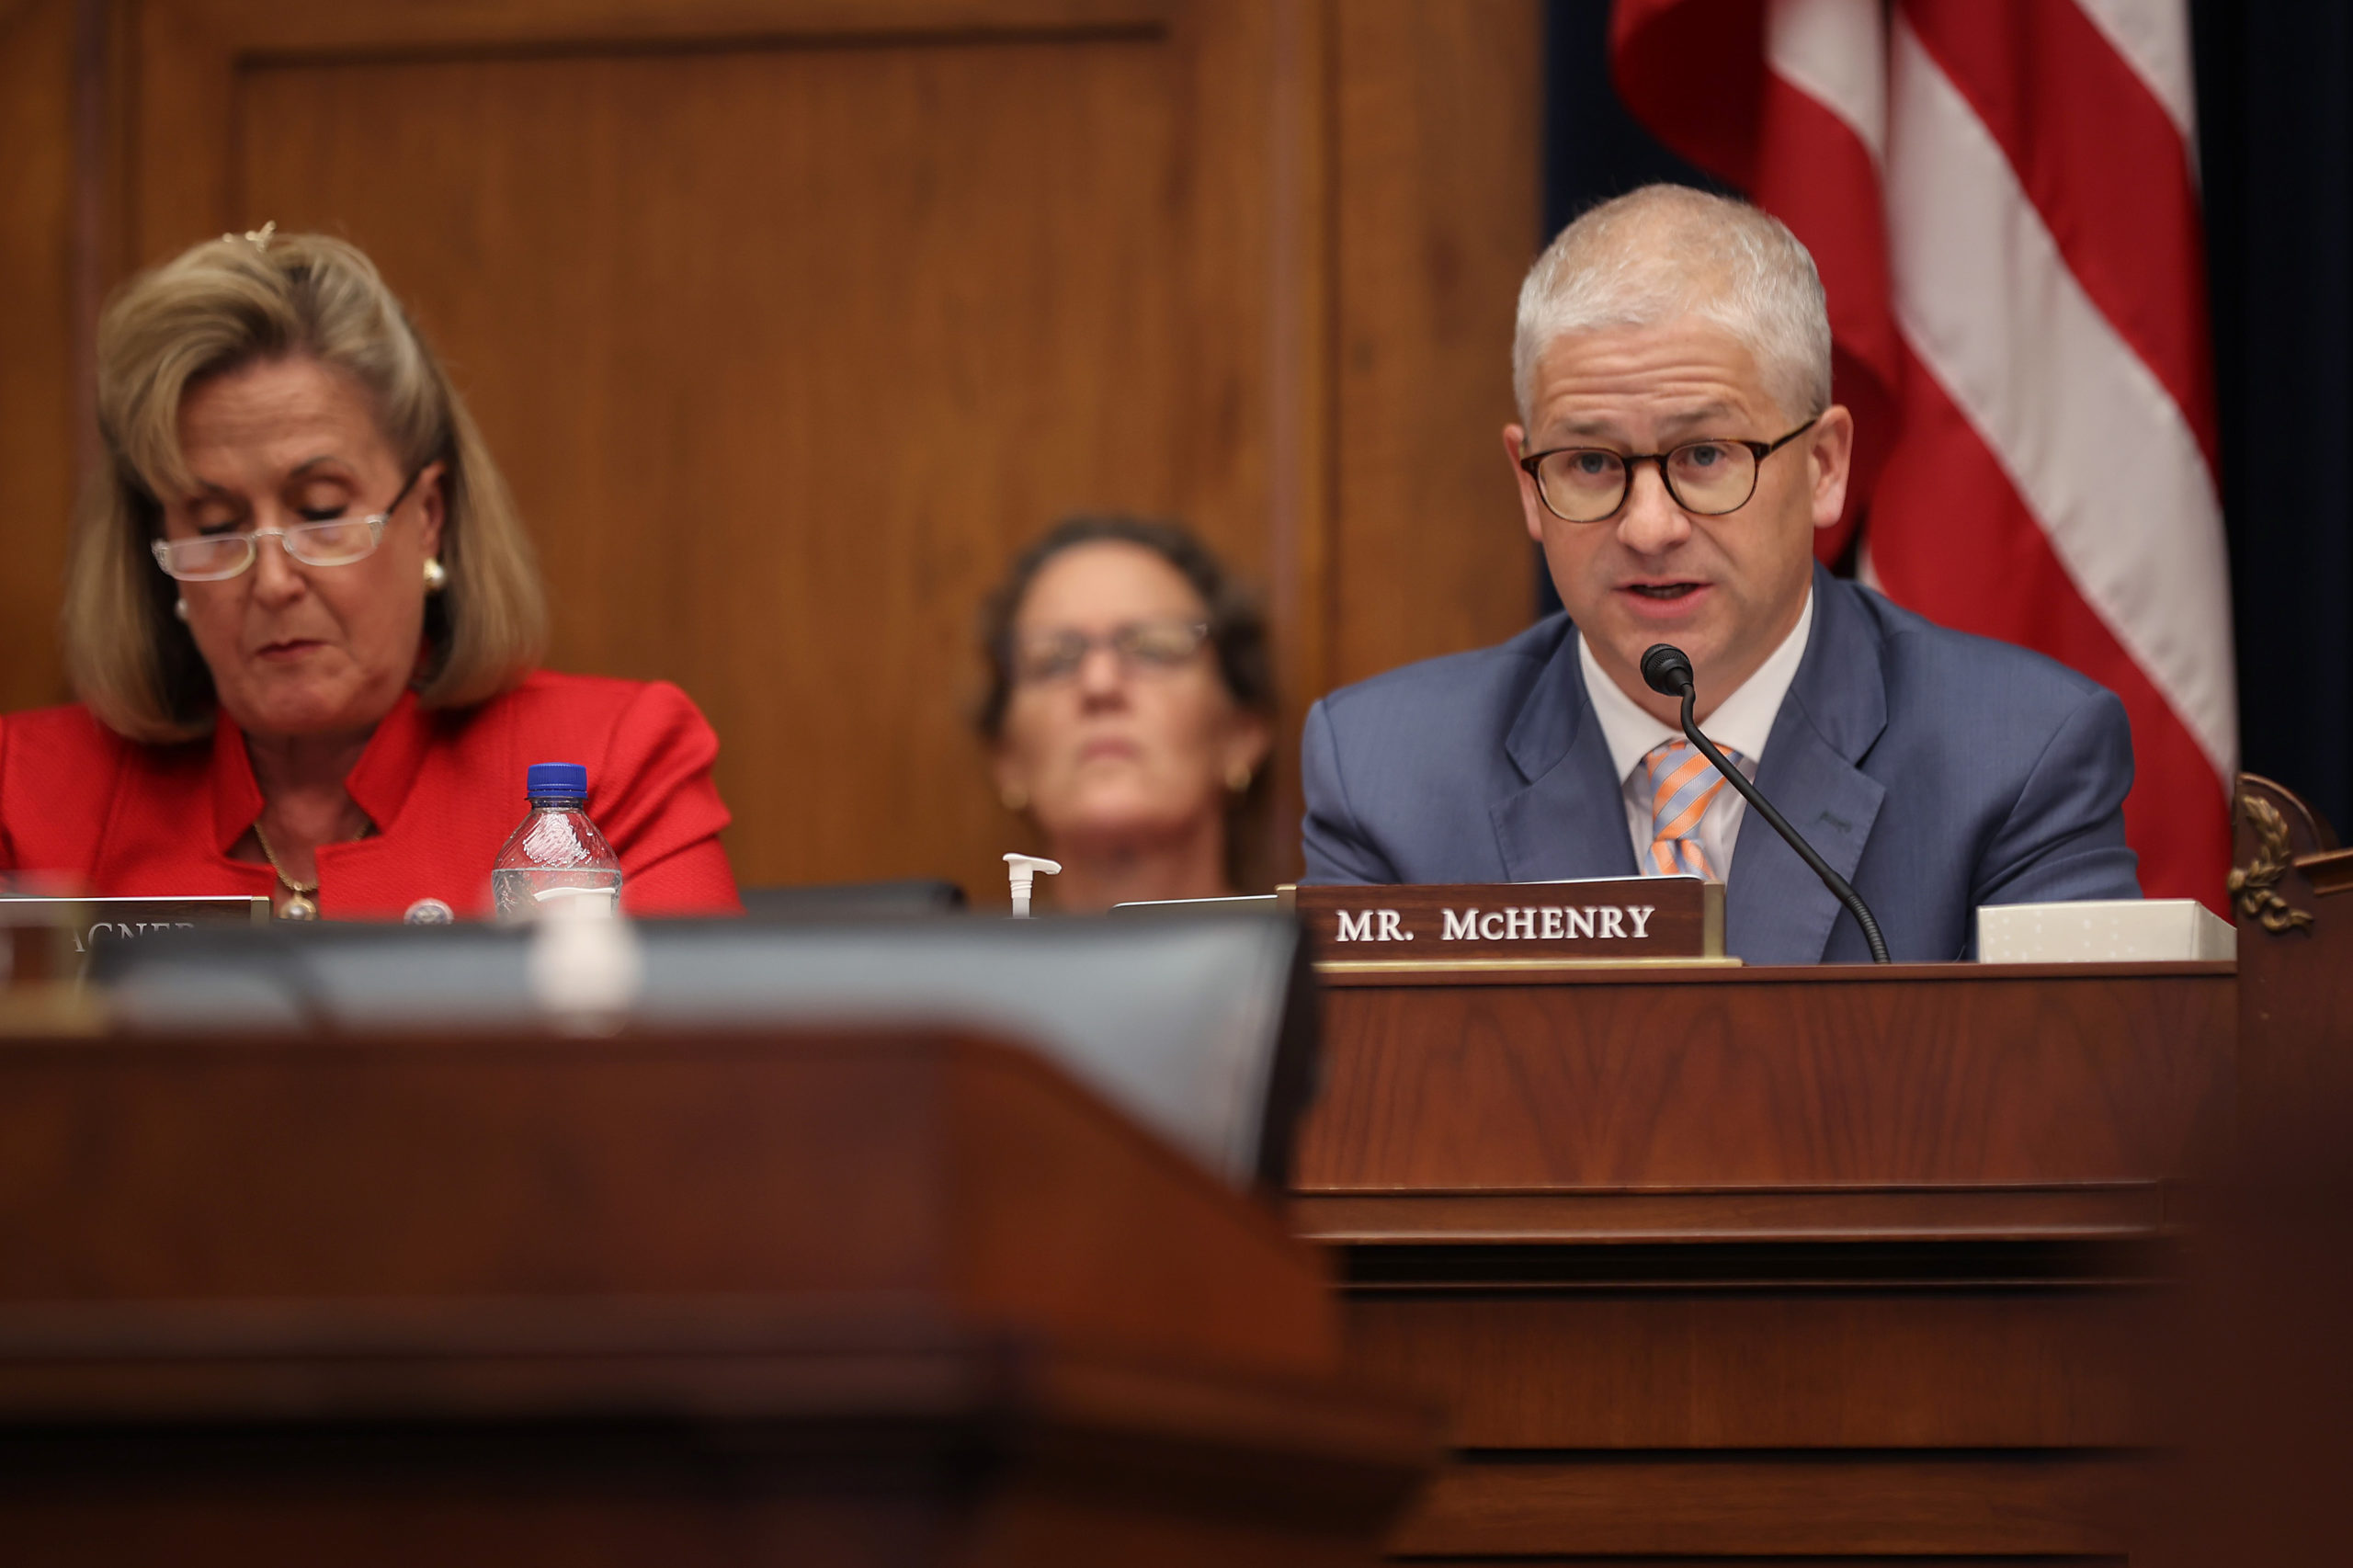 House Financial Services Committee Ranking Member Patrick McHenry delivers opening remarks at a hearing on Wednesday. (Chip Somodevilla/Getty Images)